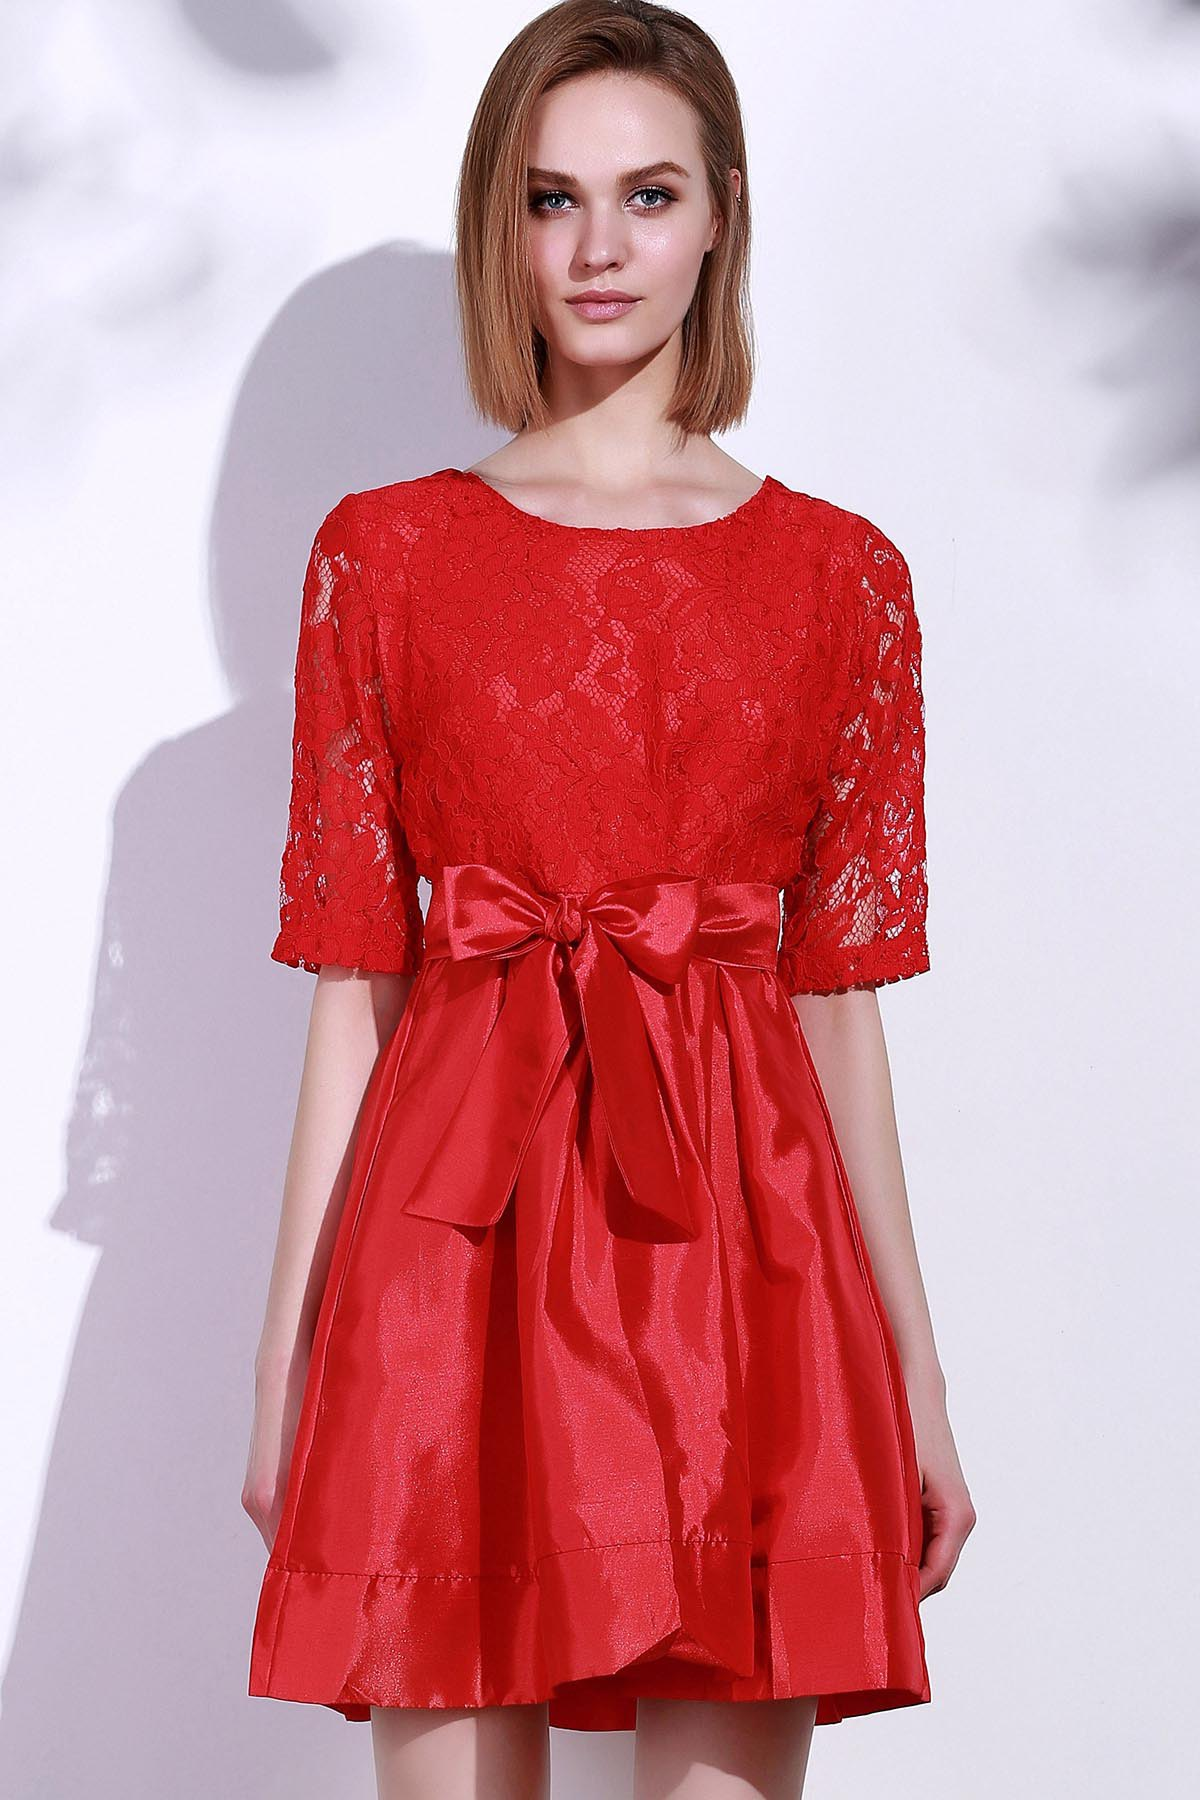 Elegant Round Neck Half Sleeve Bowknot Embellished Hollow Out Women's Dress - RED L